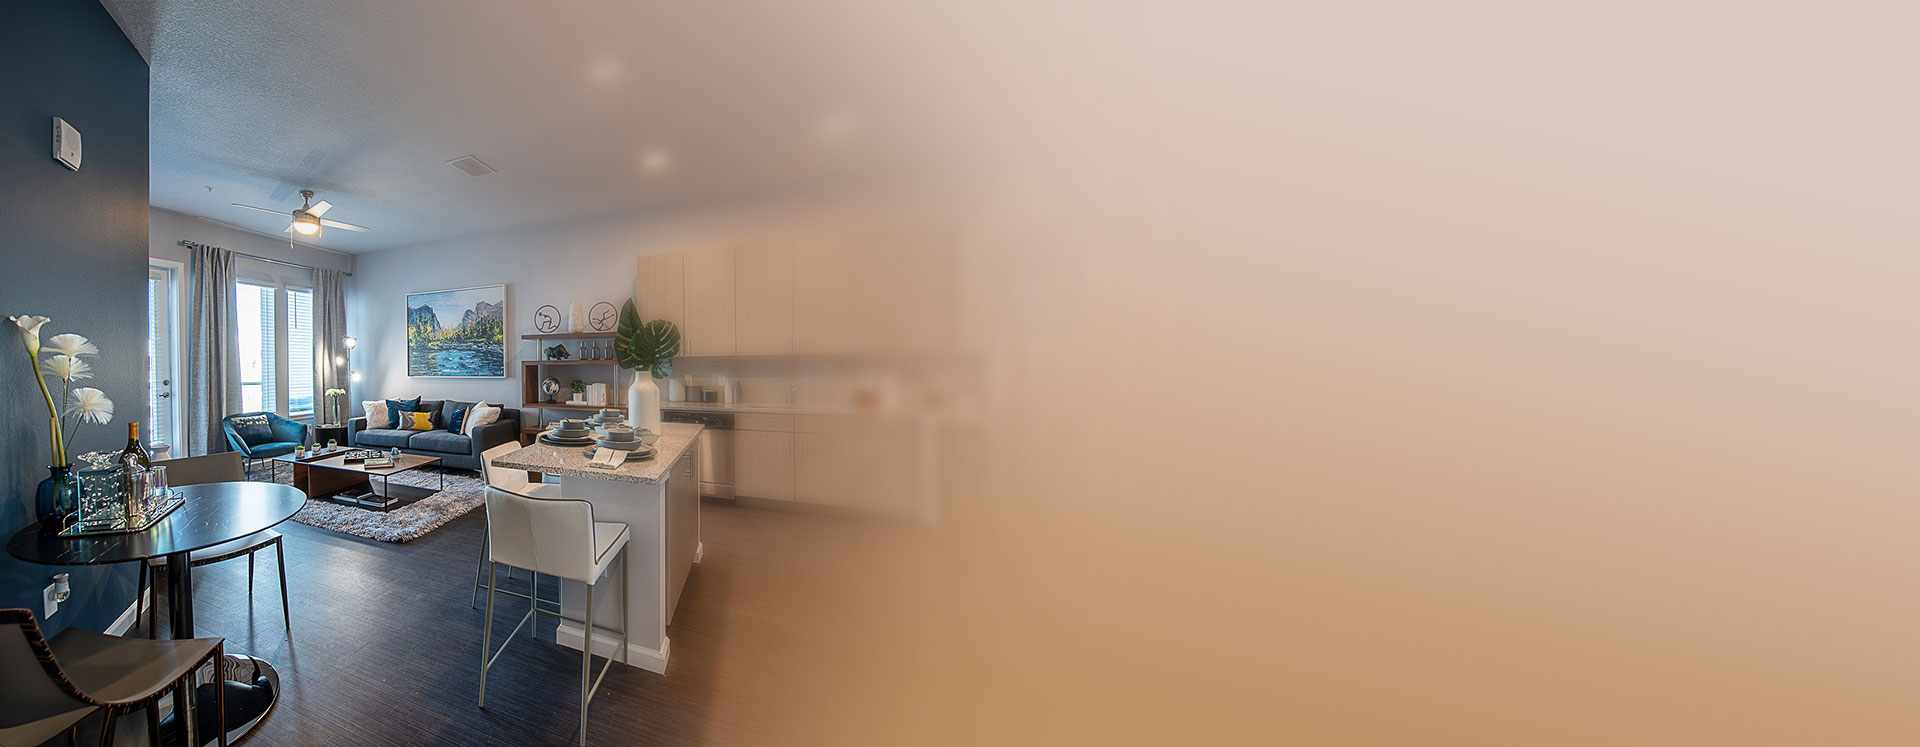 foyer and kitchen in the Pelican apartment at Sanctuary at CenterPointe apartments in Altamonte Springs FL